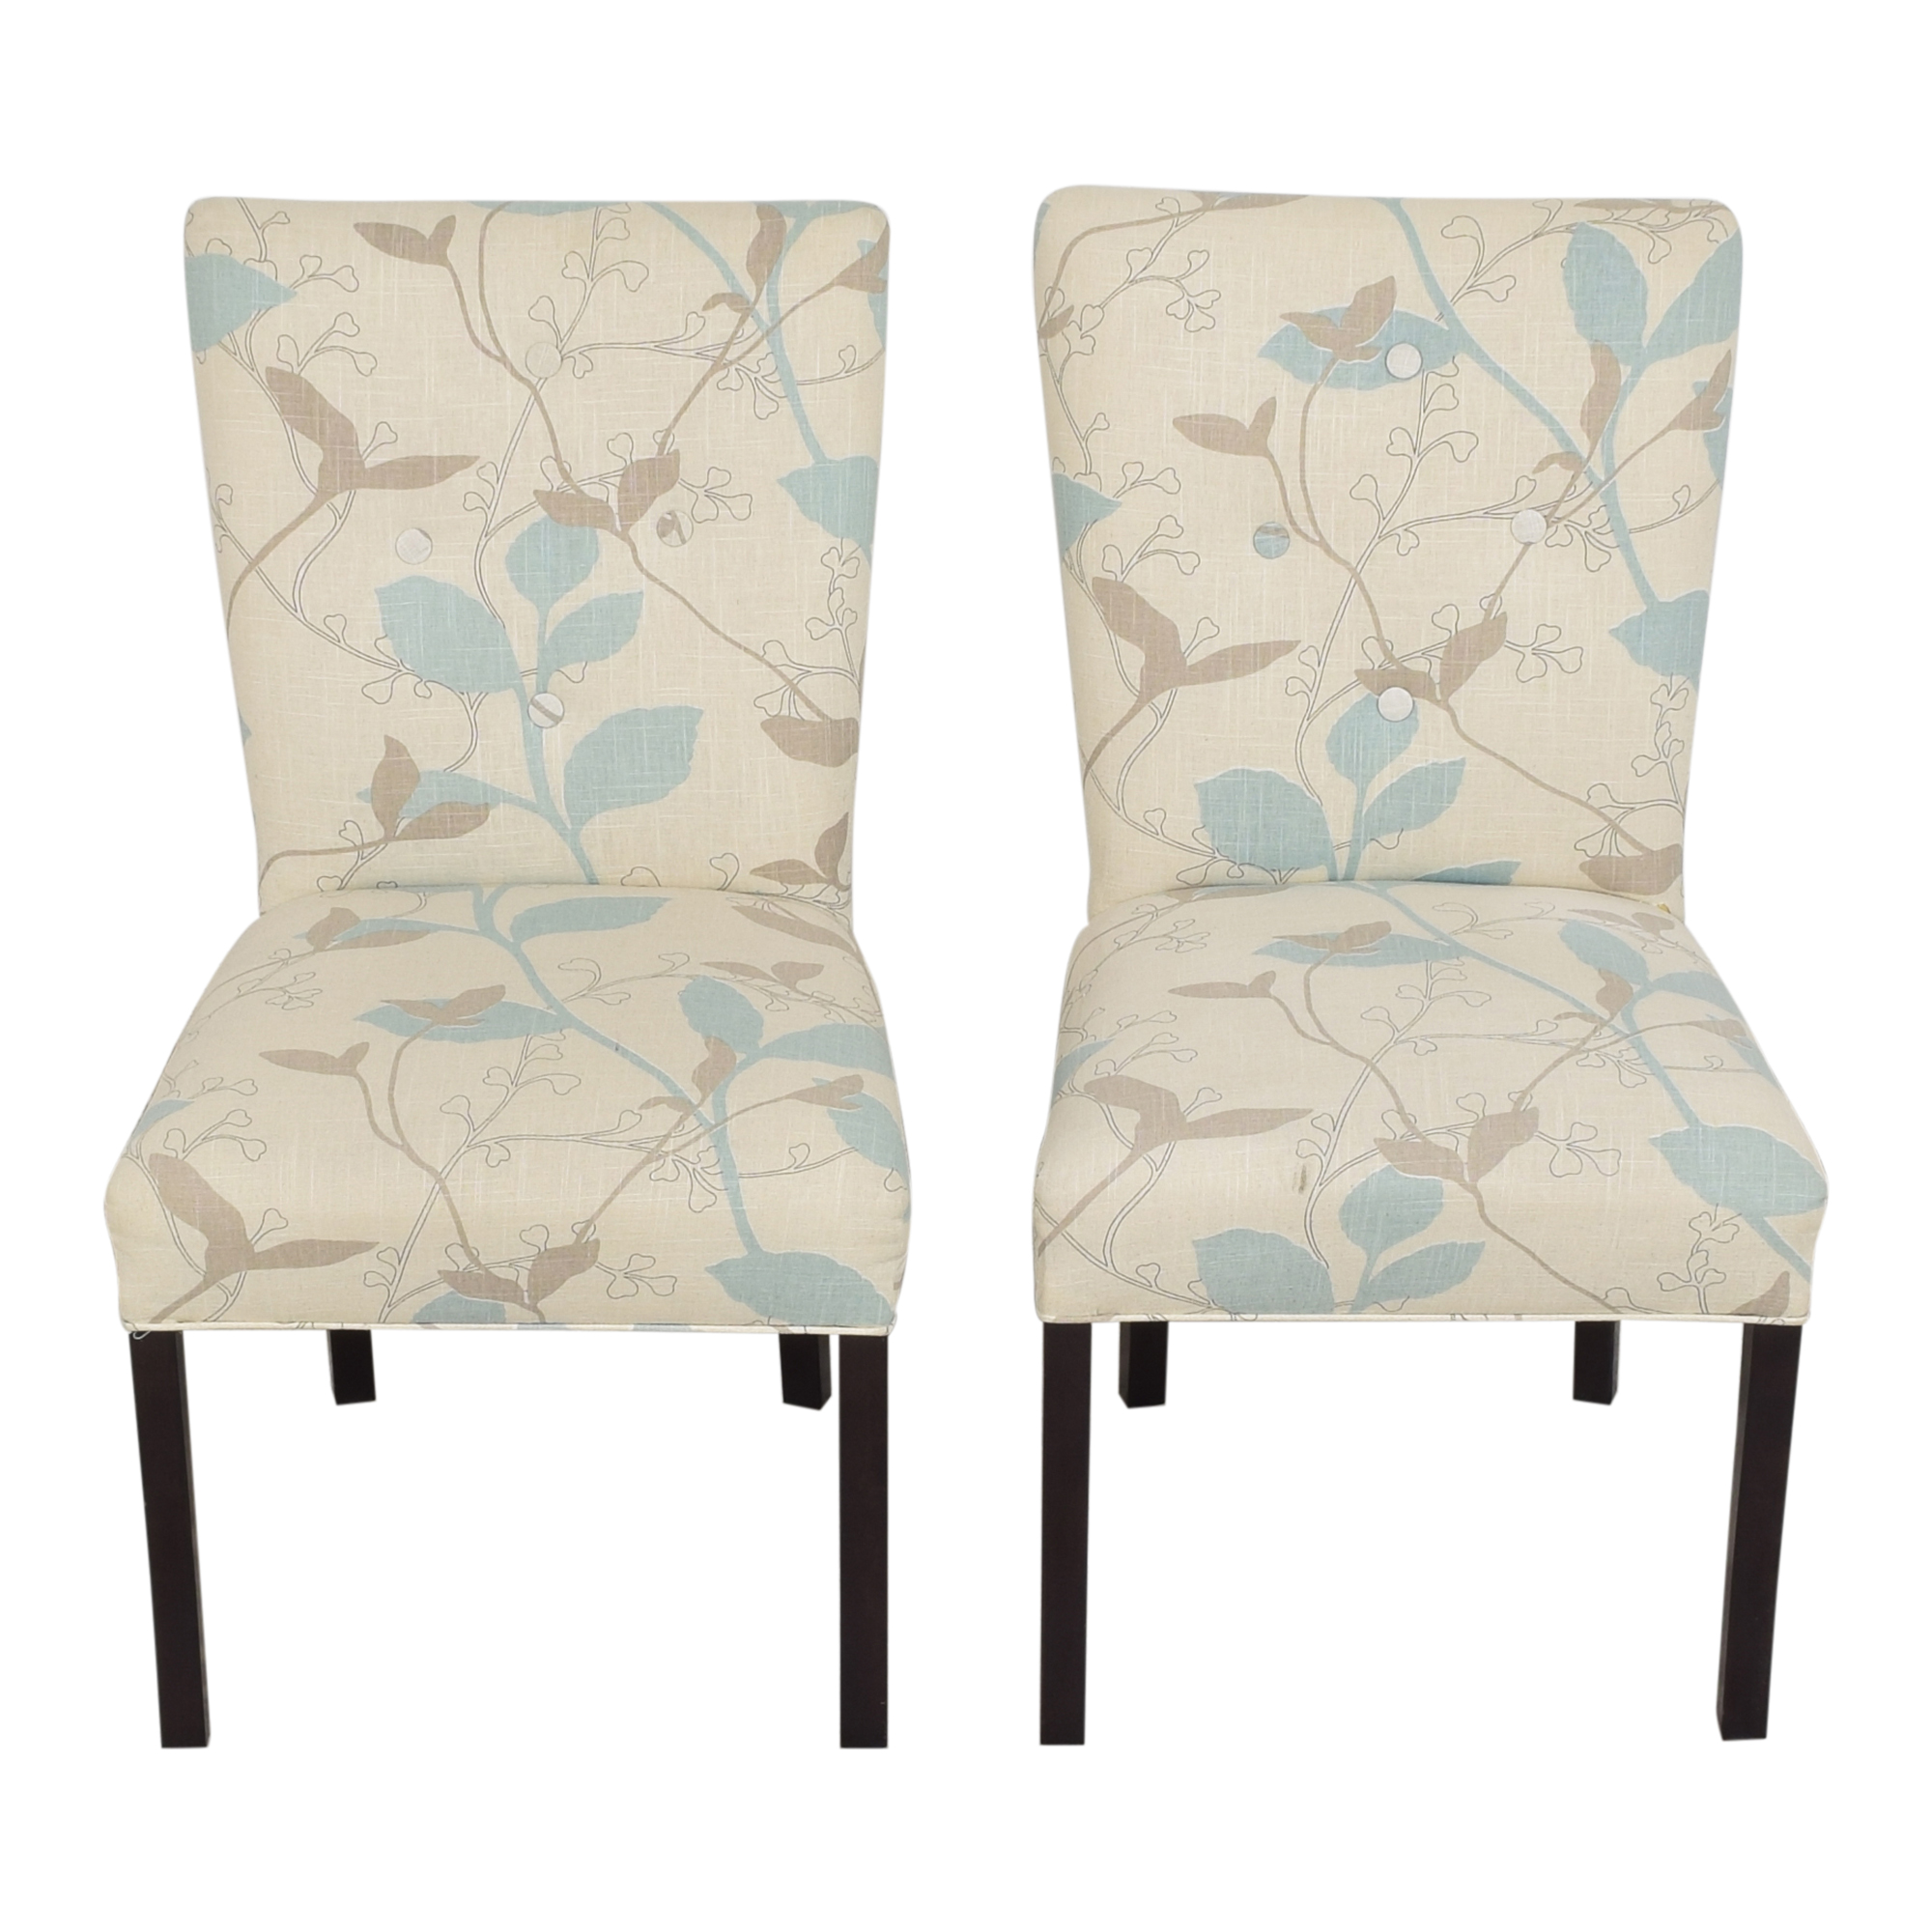 Wayfair Wayfair Sole Designs Upholstered Dining Chairs ct